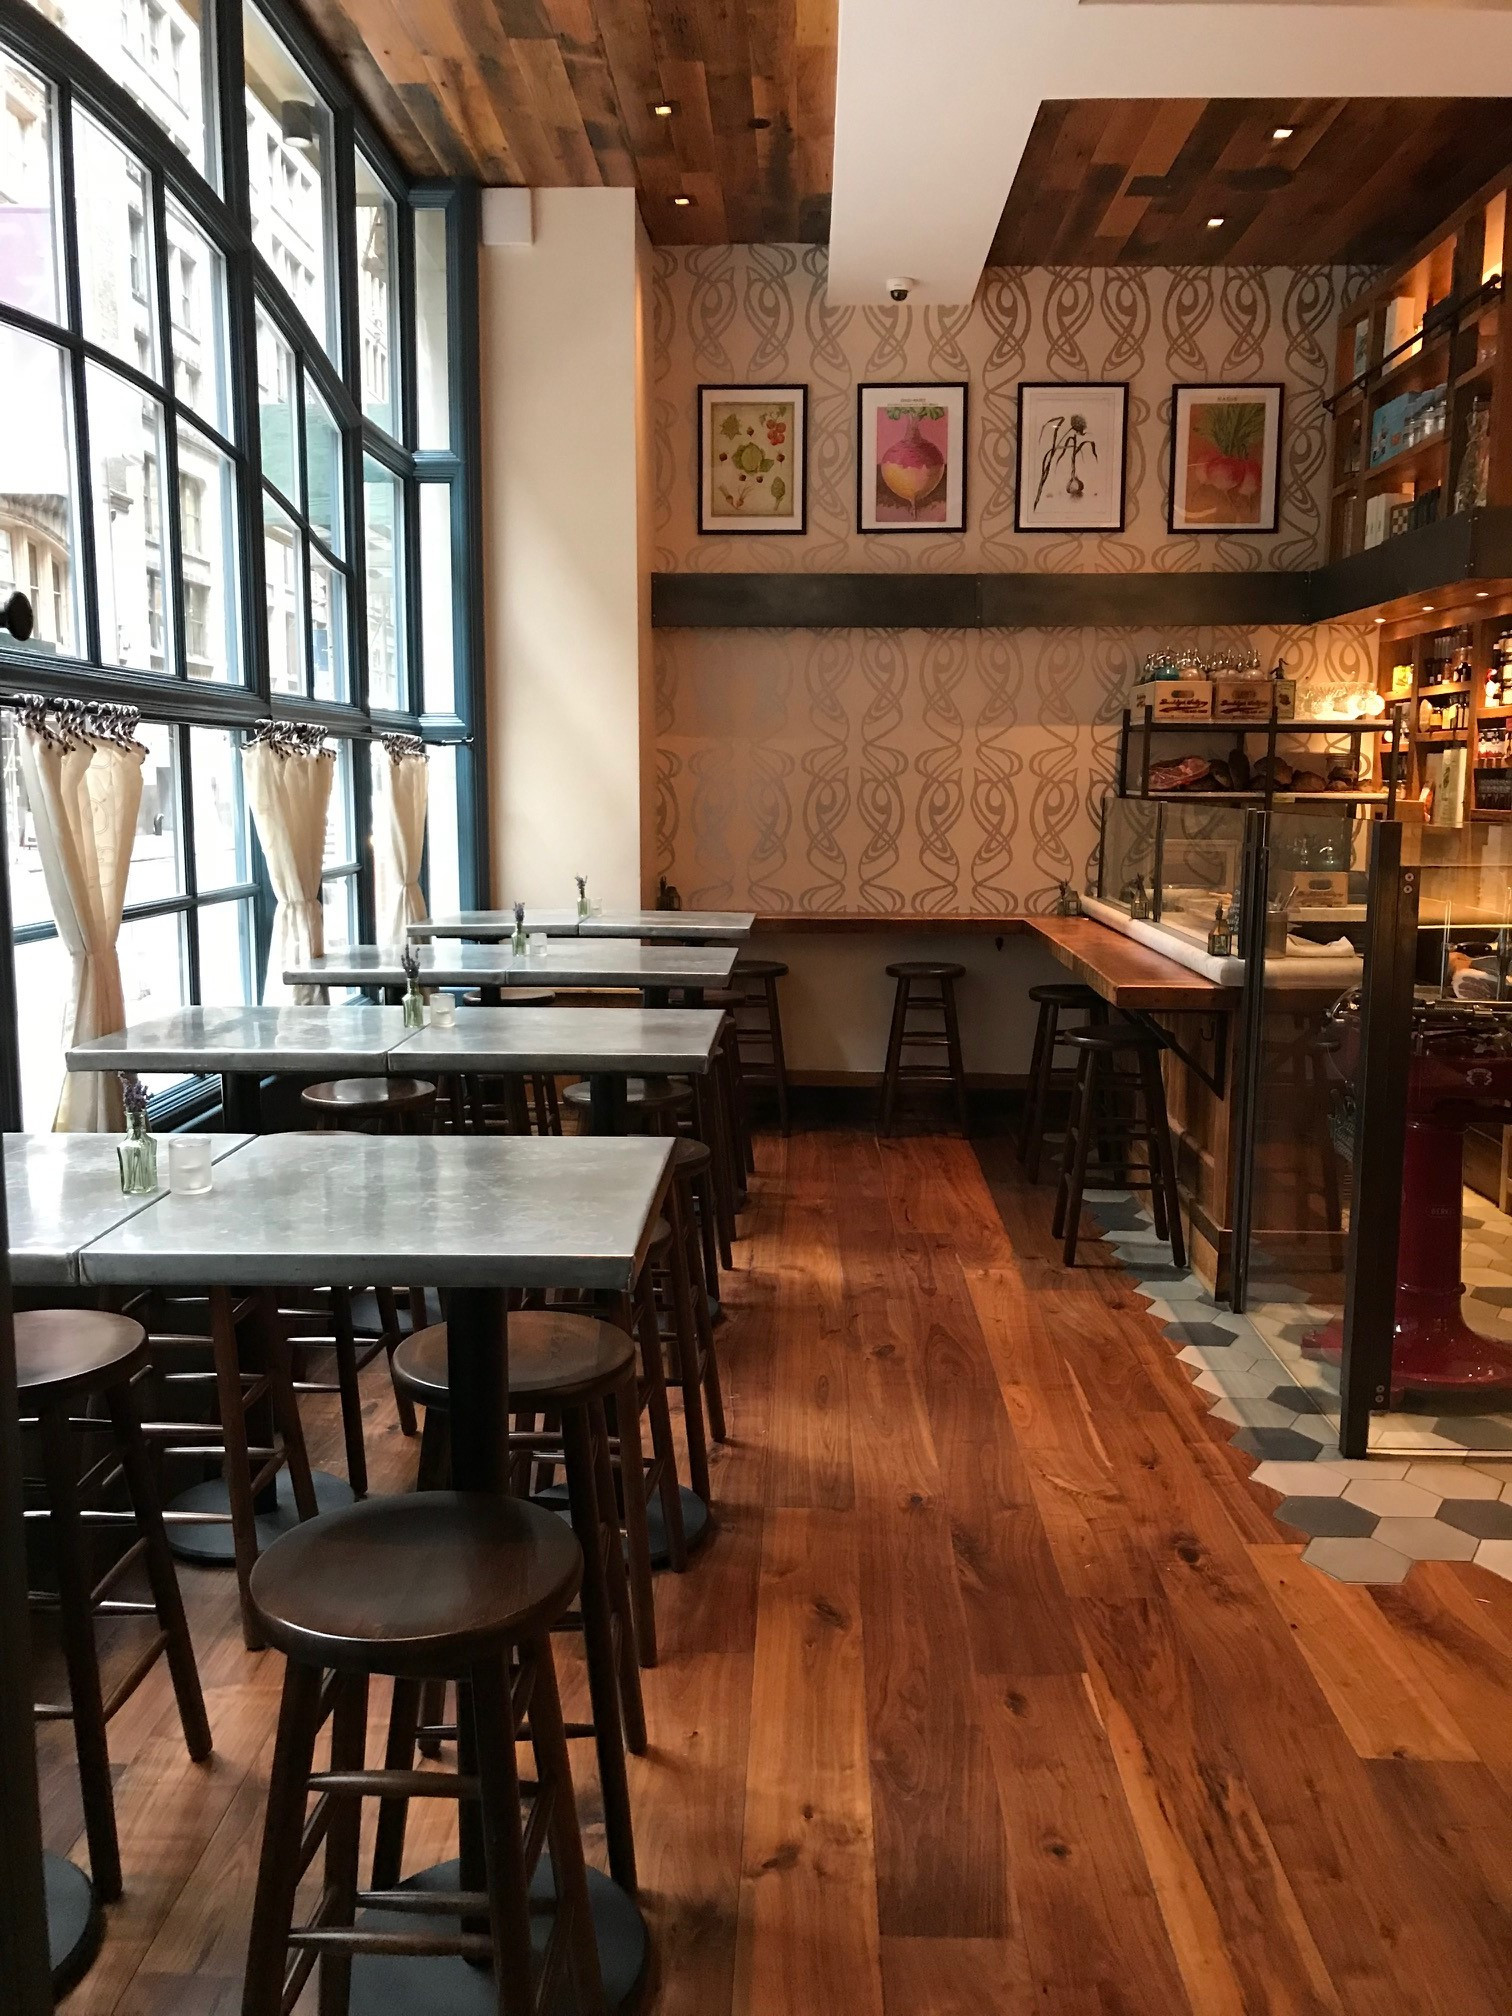 hardwood floor installation new york city of search plan and book your private event in new york city nyc ny throughout trattoria italienne event space in new york city nyc ny nj area